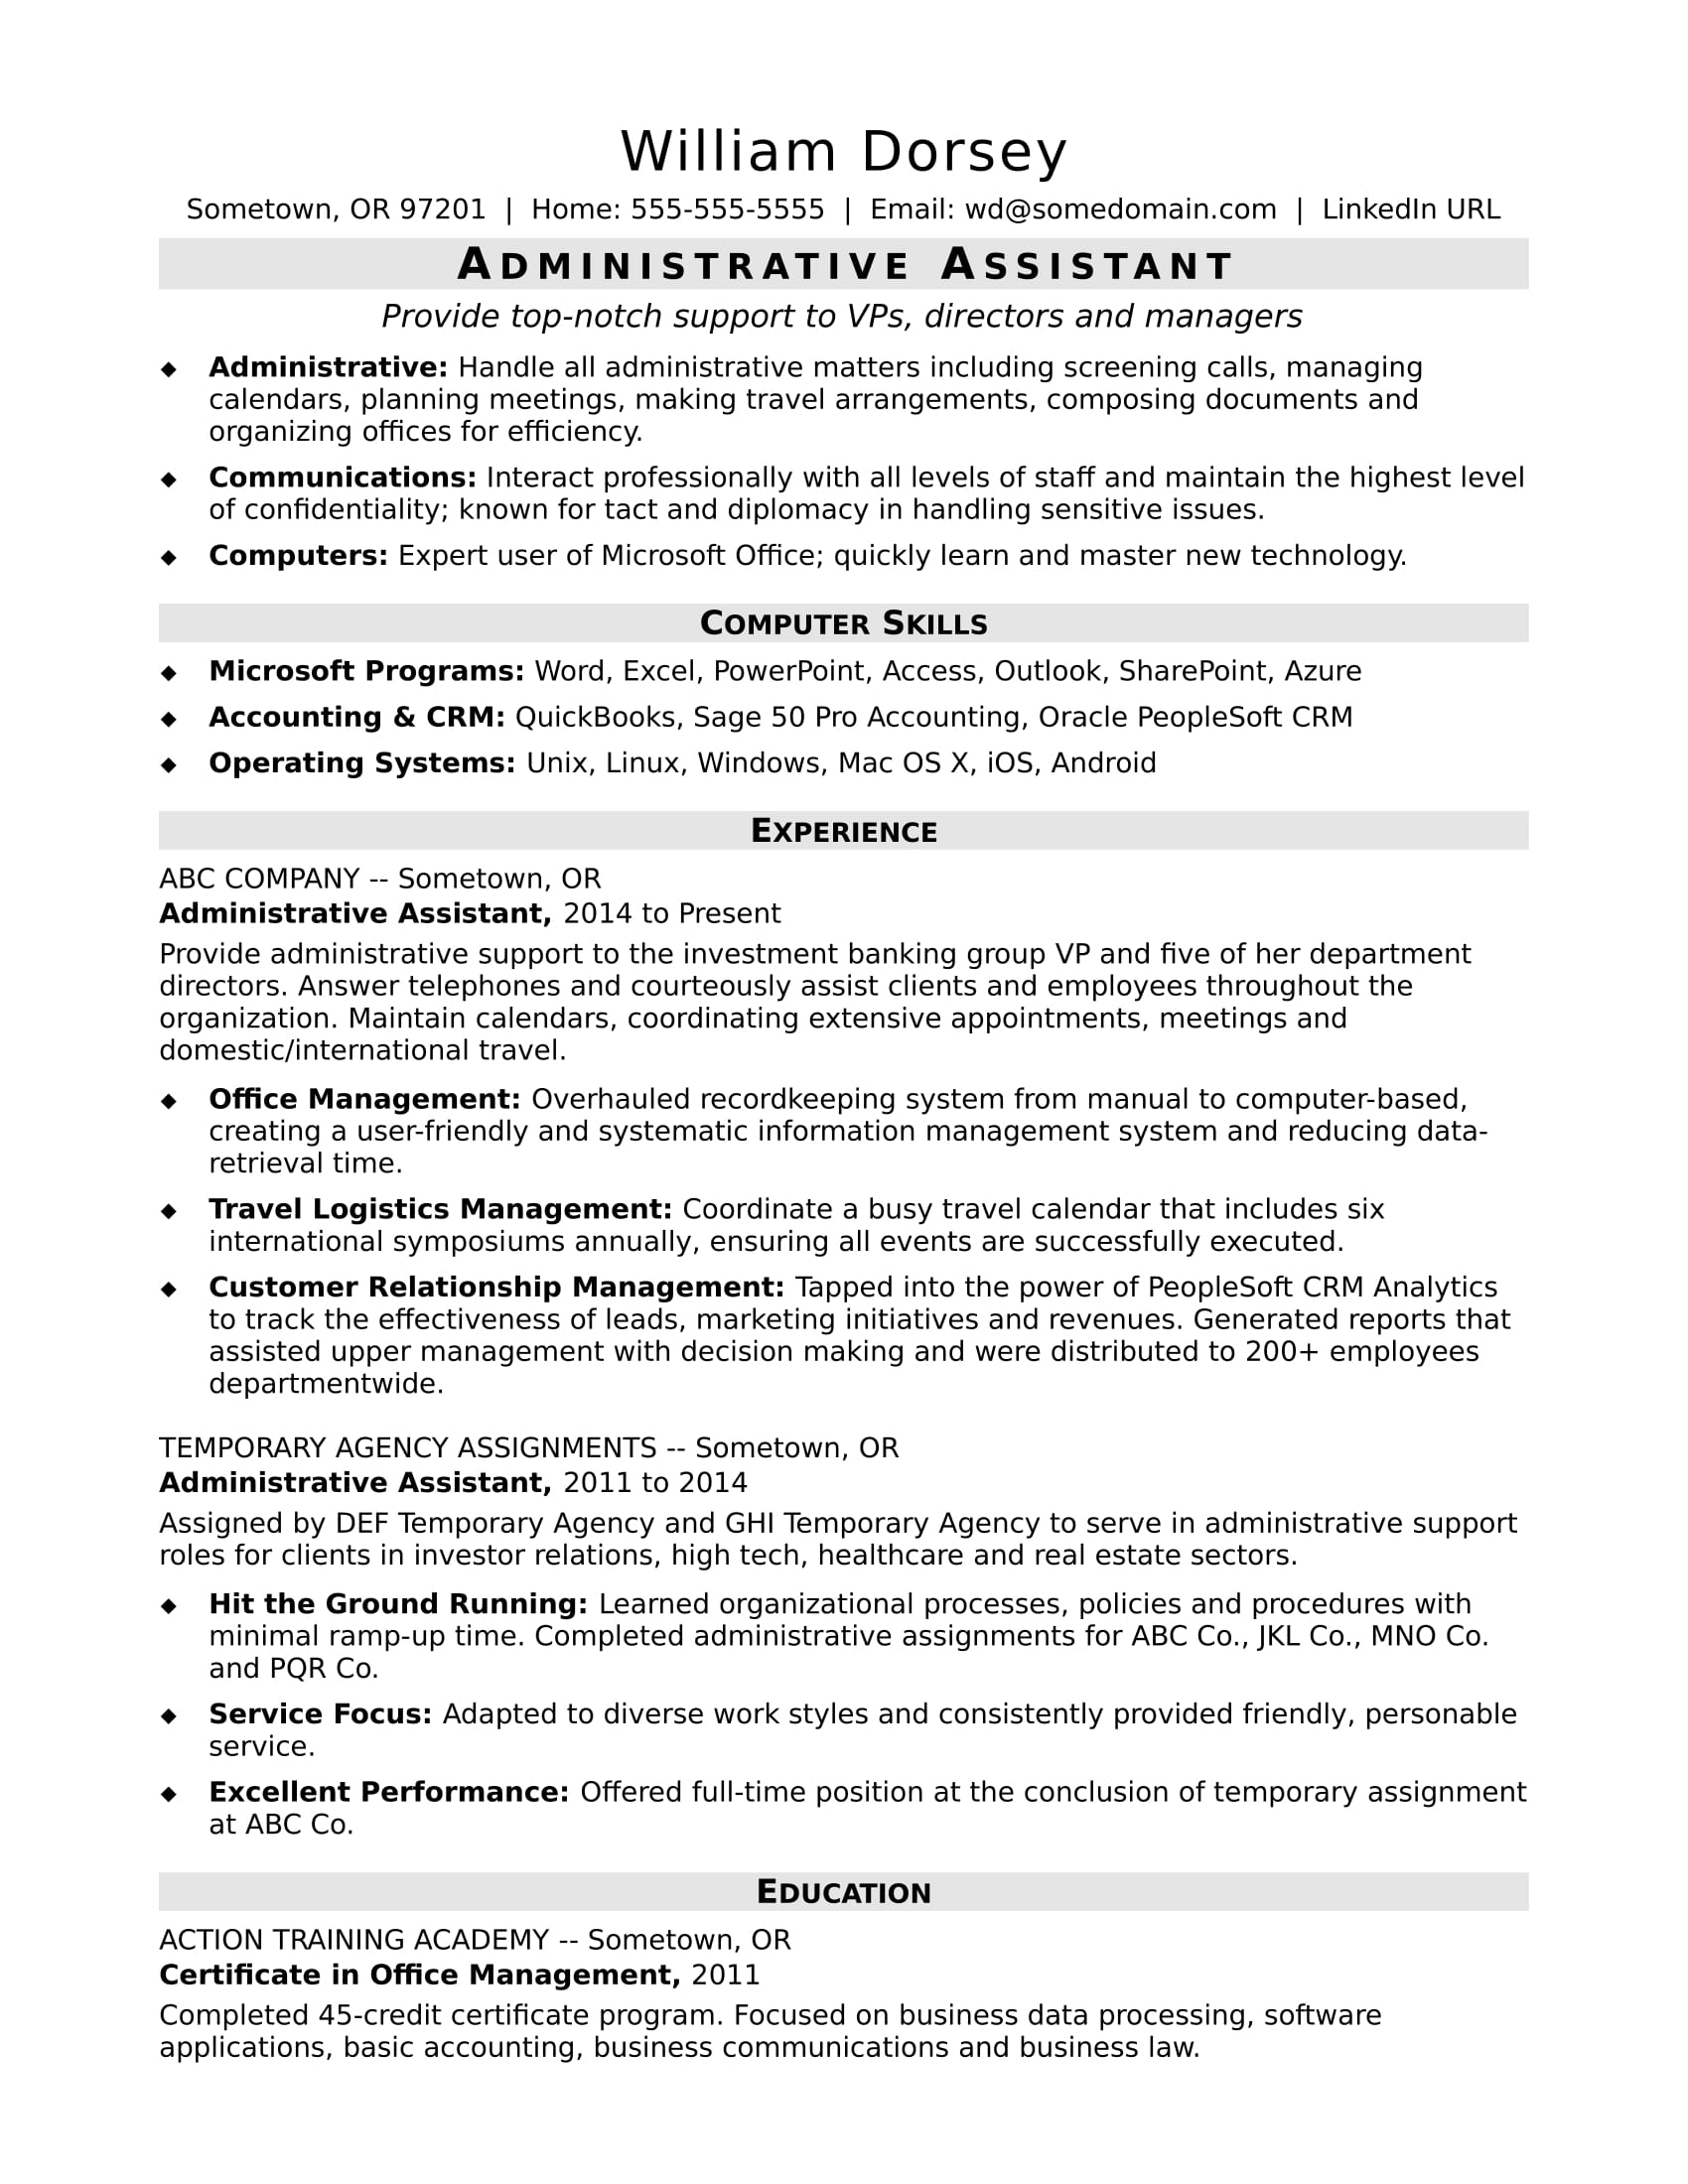 Midlevel Administrative Assistant Resume Sample | Monster.com